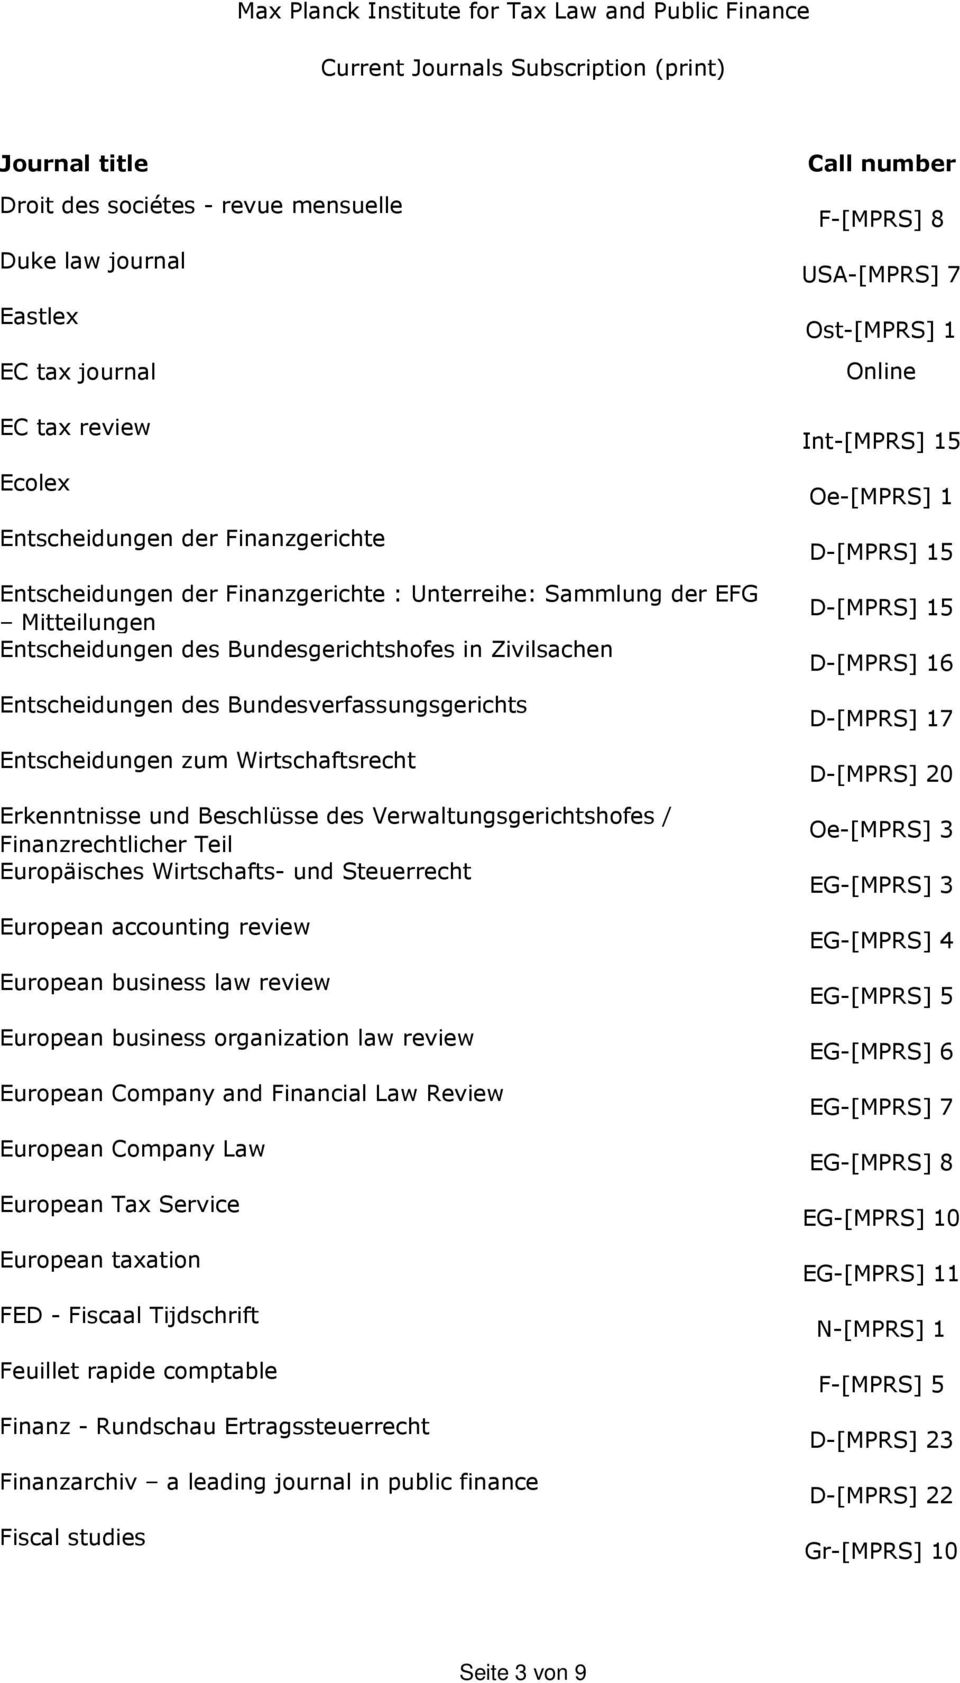 Verwaltungsgerichtshofes / Finanzrechtlicher Teil Europäisches Wirtschafts- und Steuerrecht European accounting review European business law review European business organization law review European